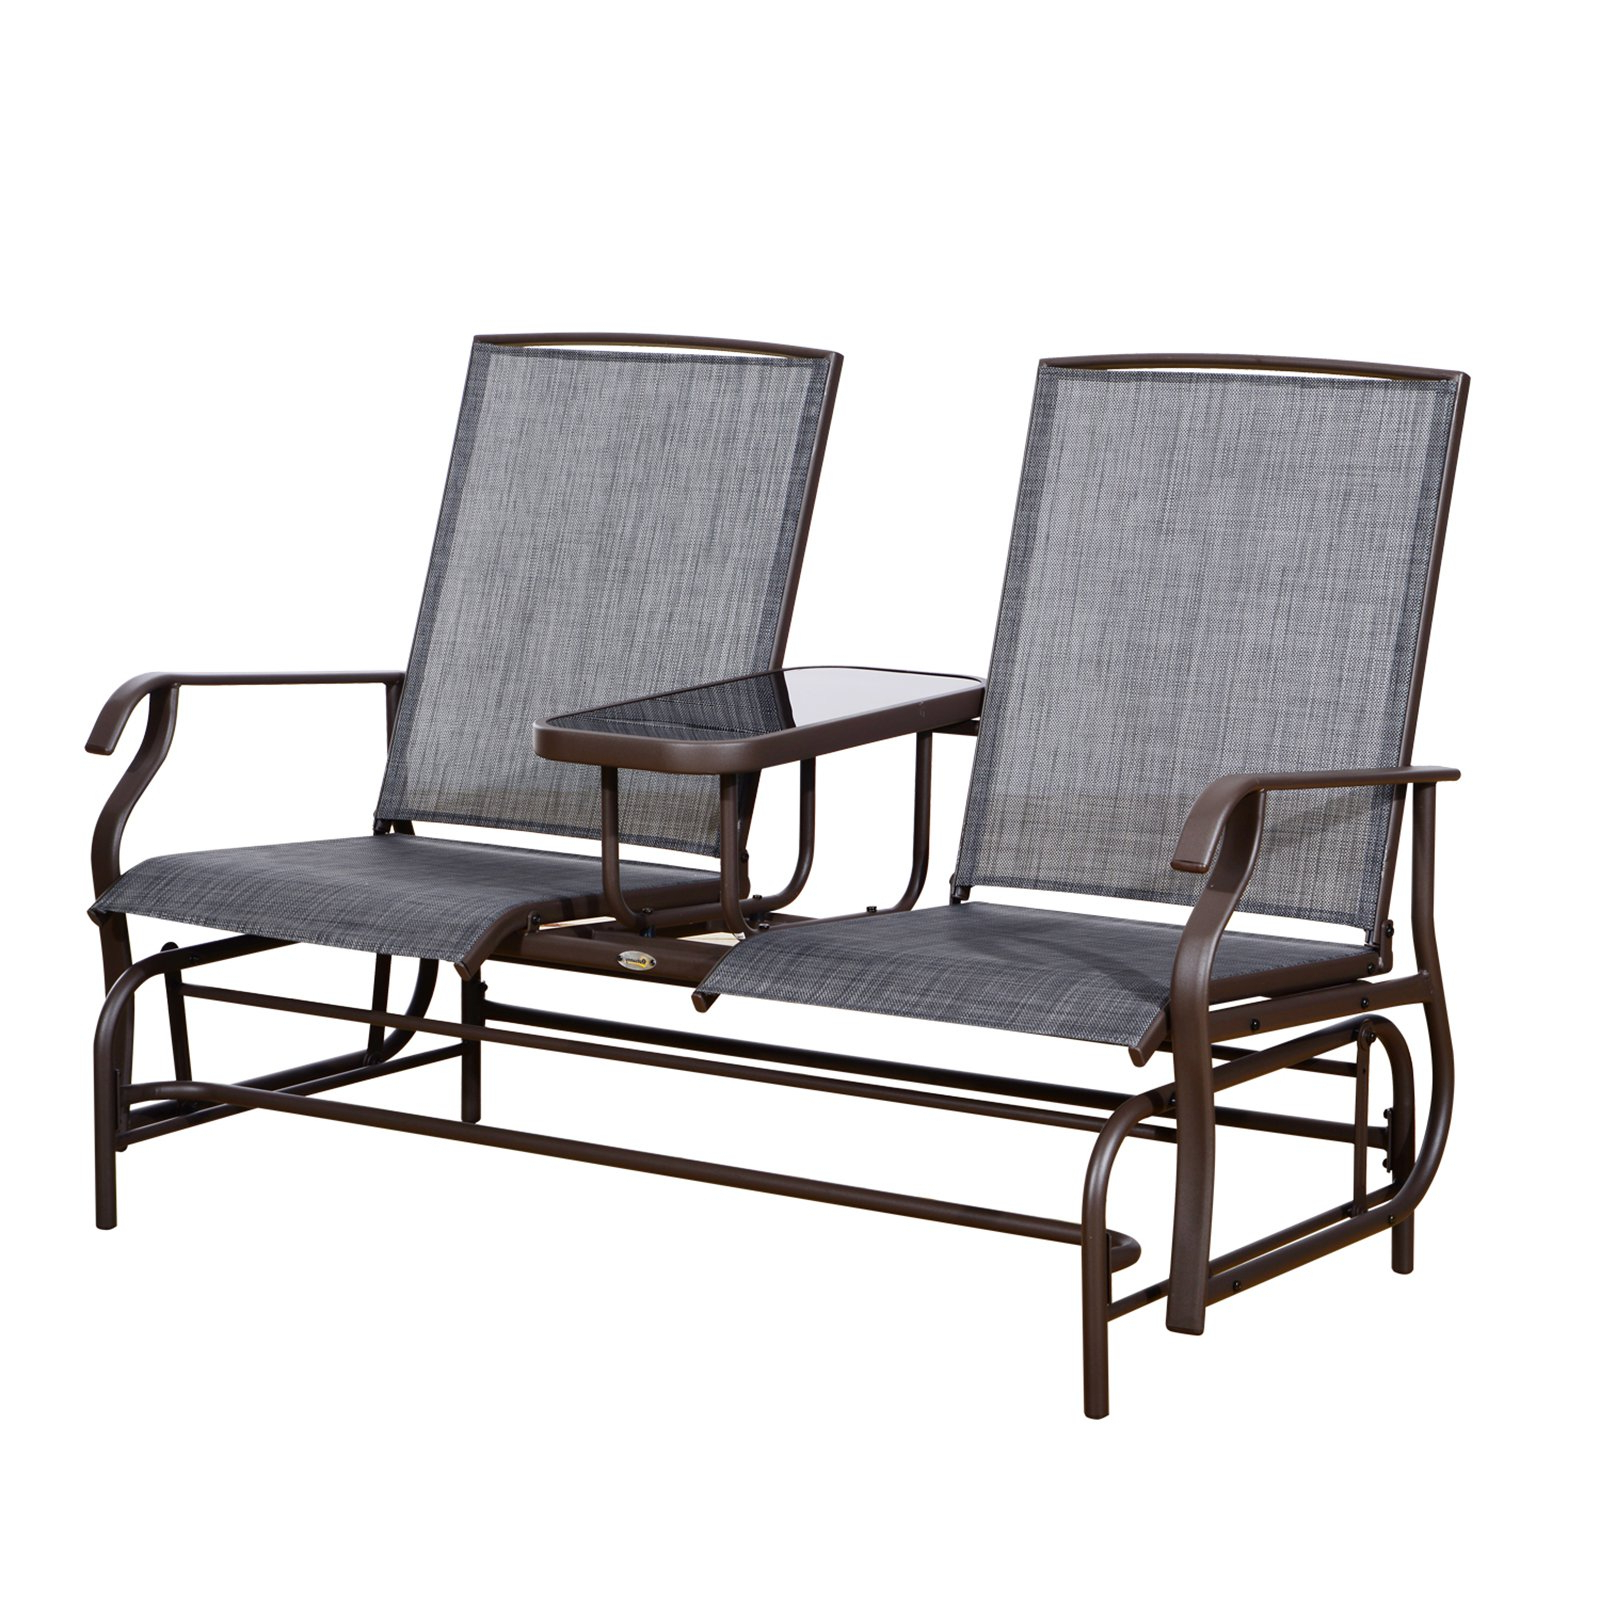 Center Table Double Glider Benches For Current Outsunny 2 Person Mesh Fabric Patio Double Glider Chair With (Gallery 1 of 30)